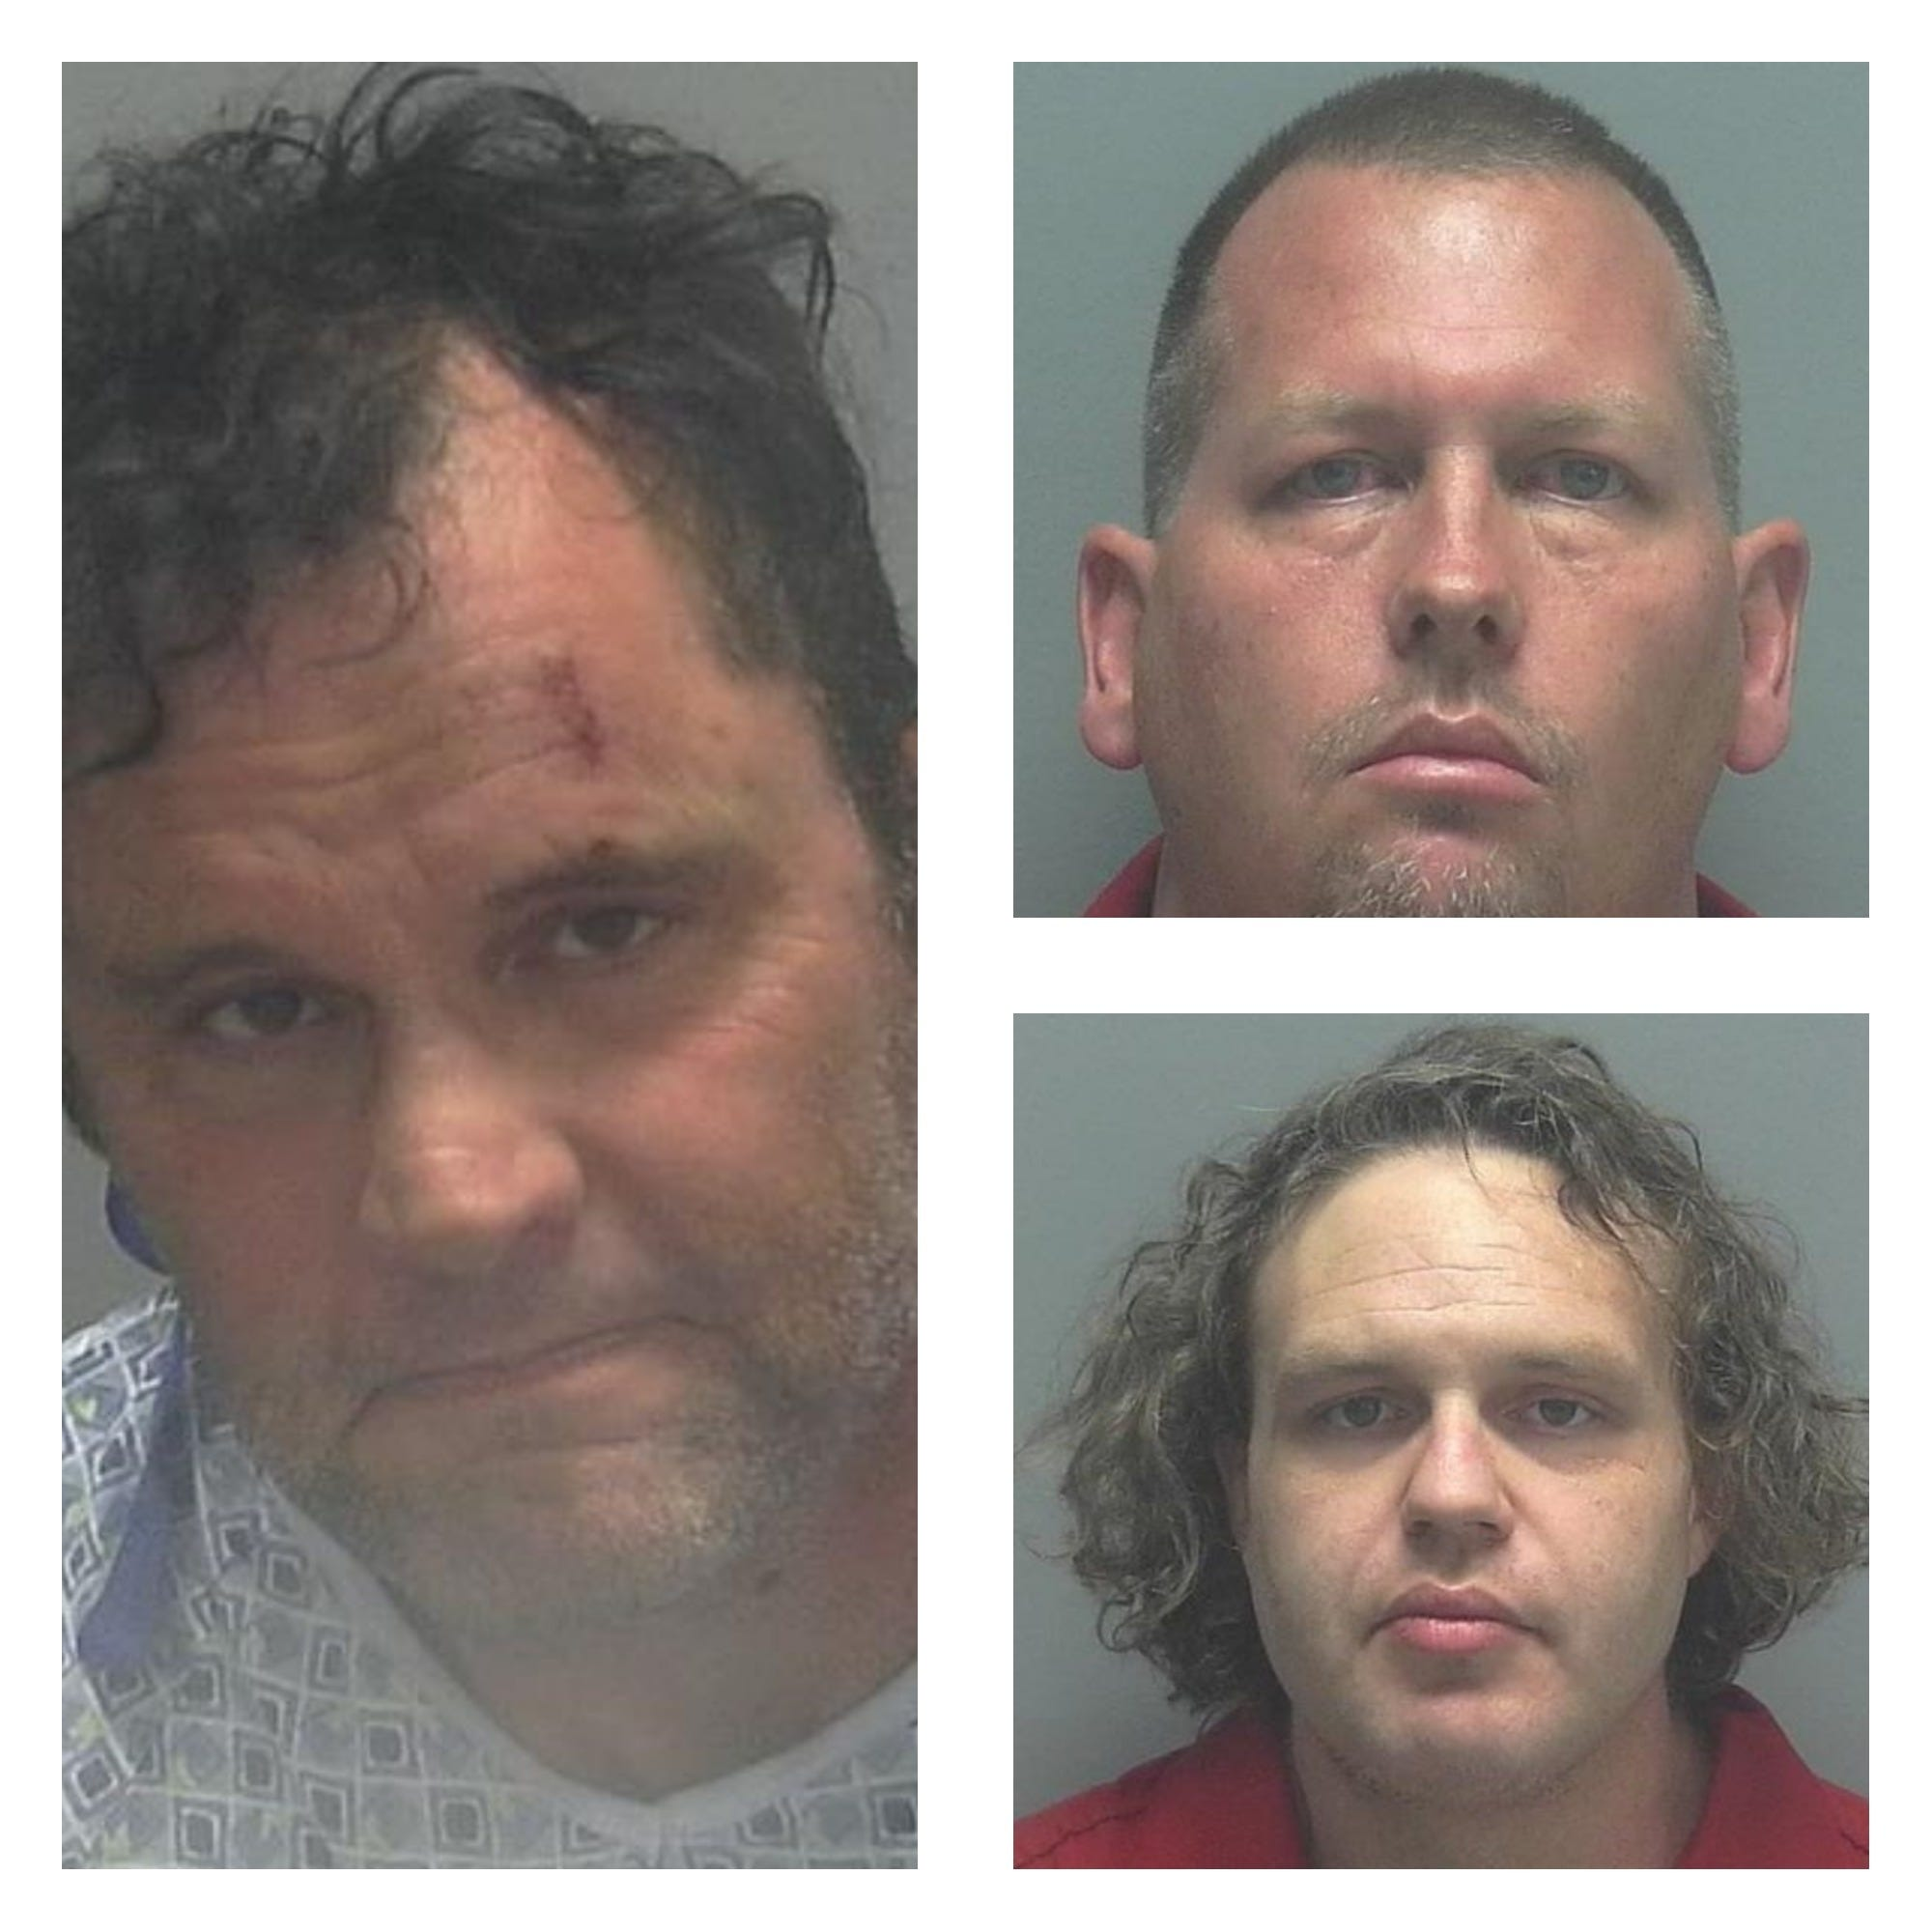 Local Sexually Listed Predators